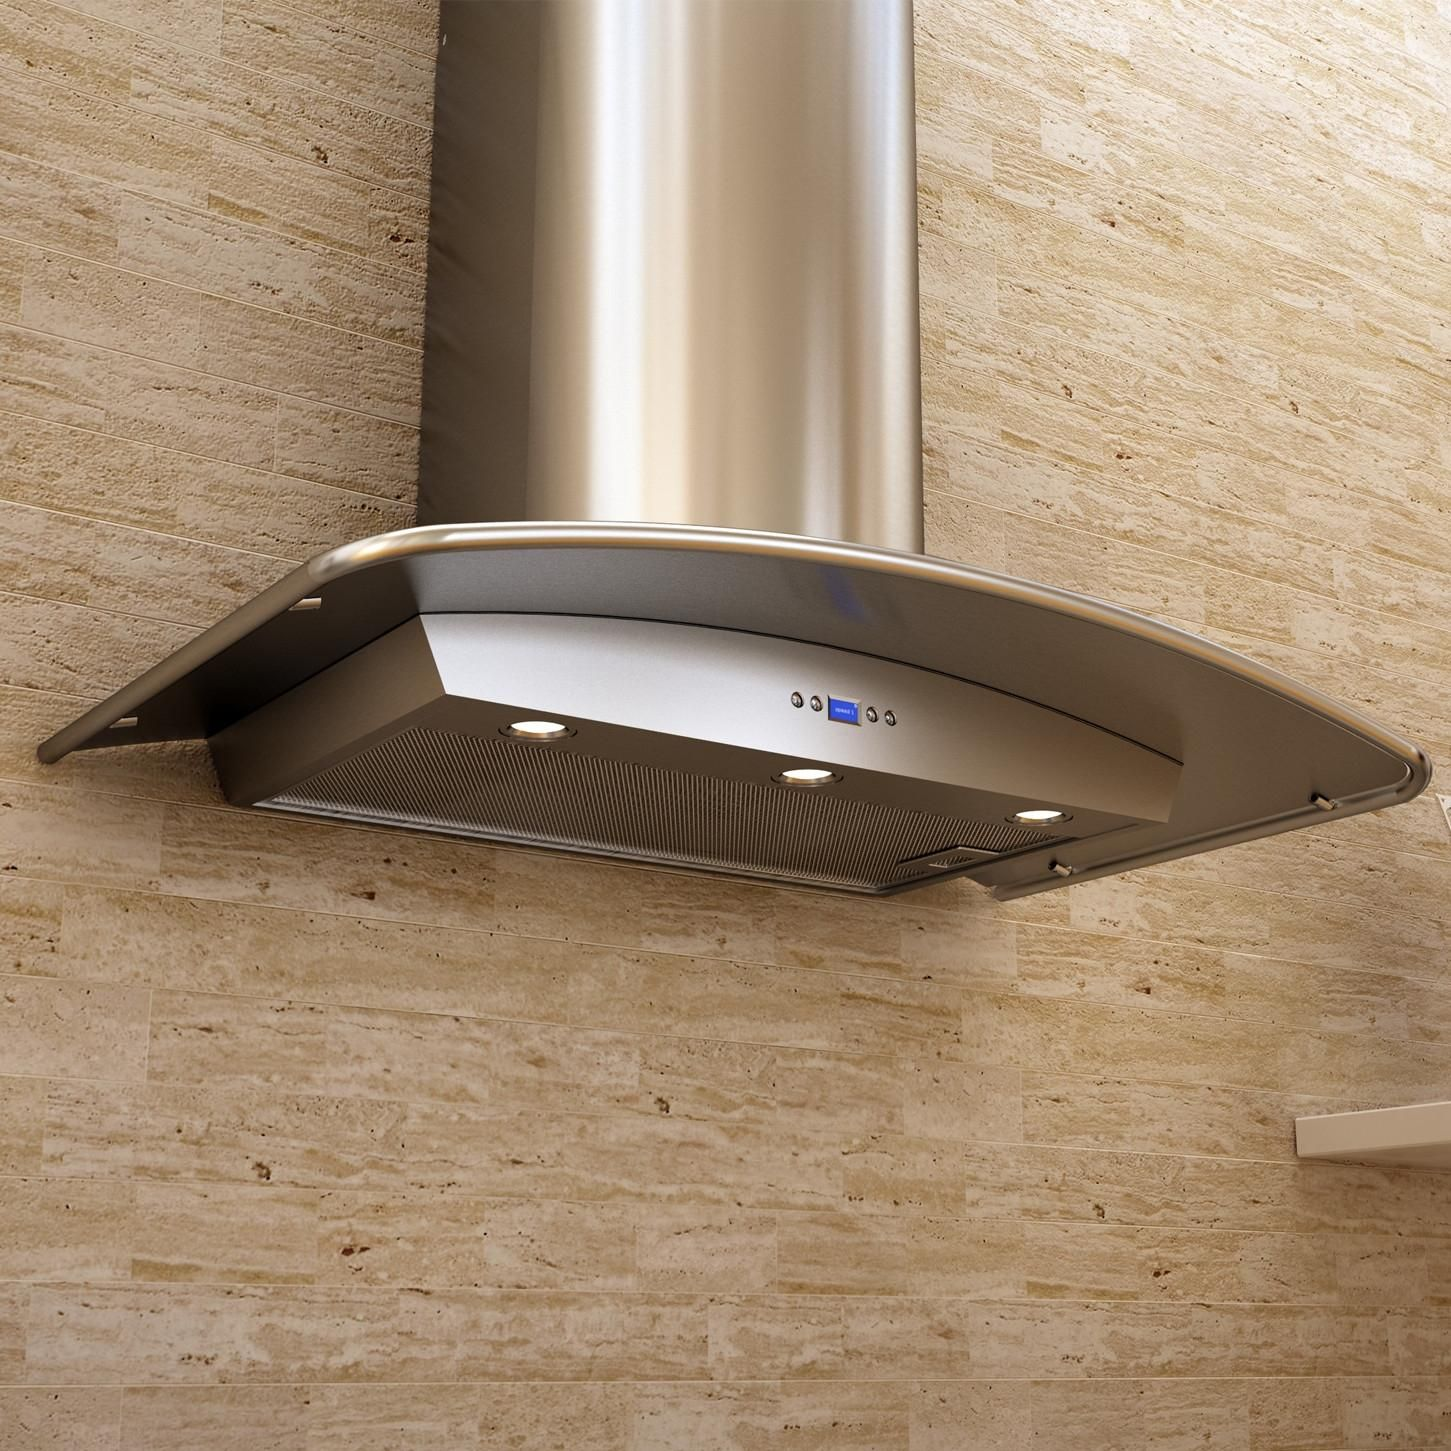 Zephyr Range Hoods 36 Inch Europa Milano Wall Mount Chimney Range Hood With 715 Cfm Internal Blower Stainless Steel Canopy Zmi M90bs Bbqguys Range Hood New Homes Kitchen Range Hood